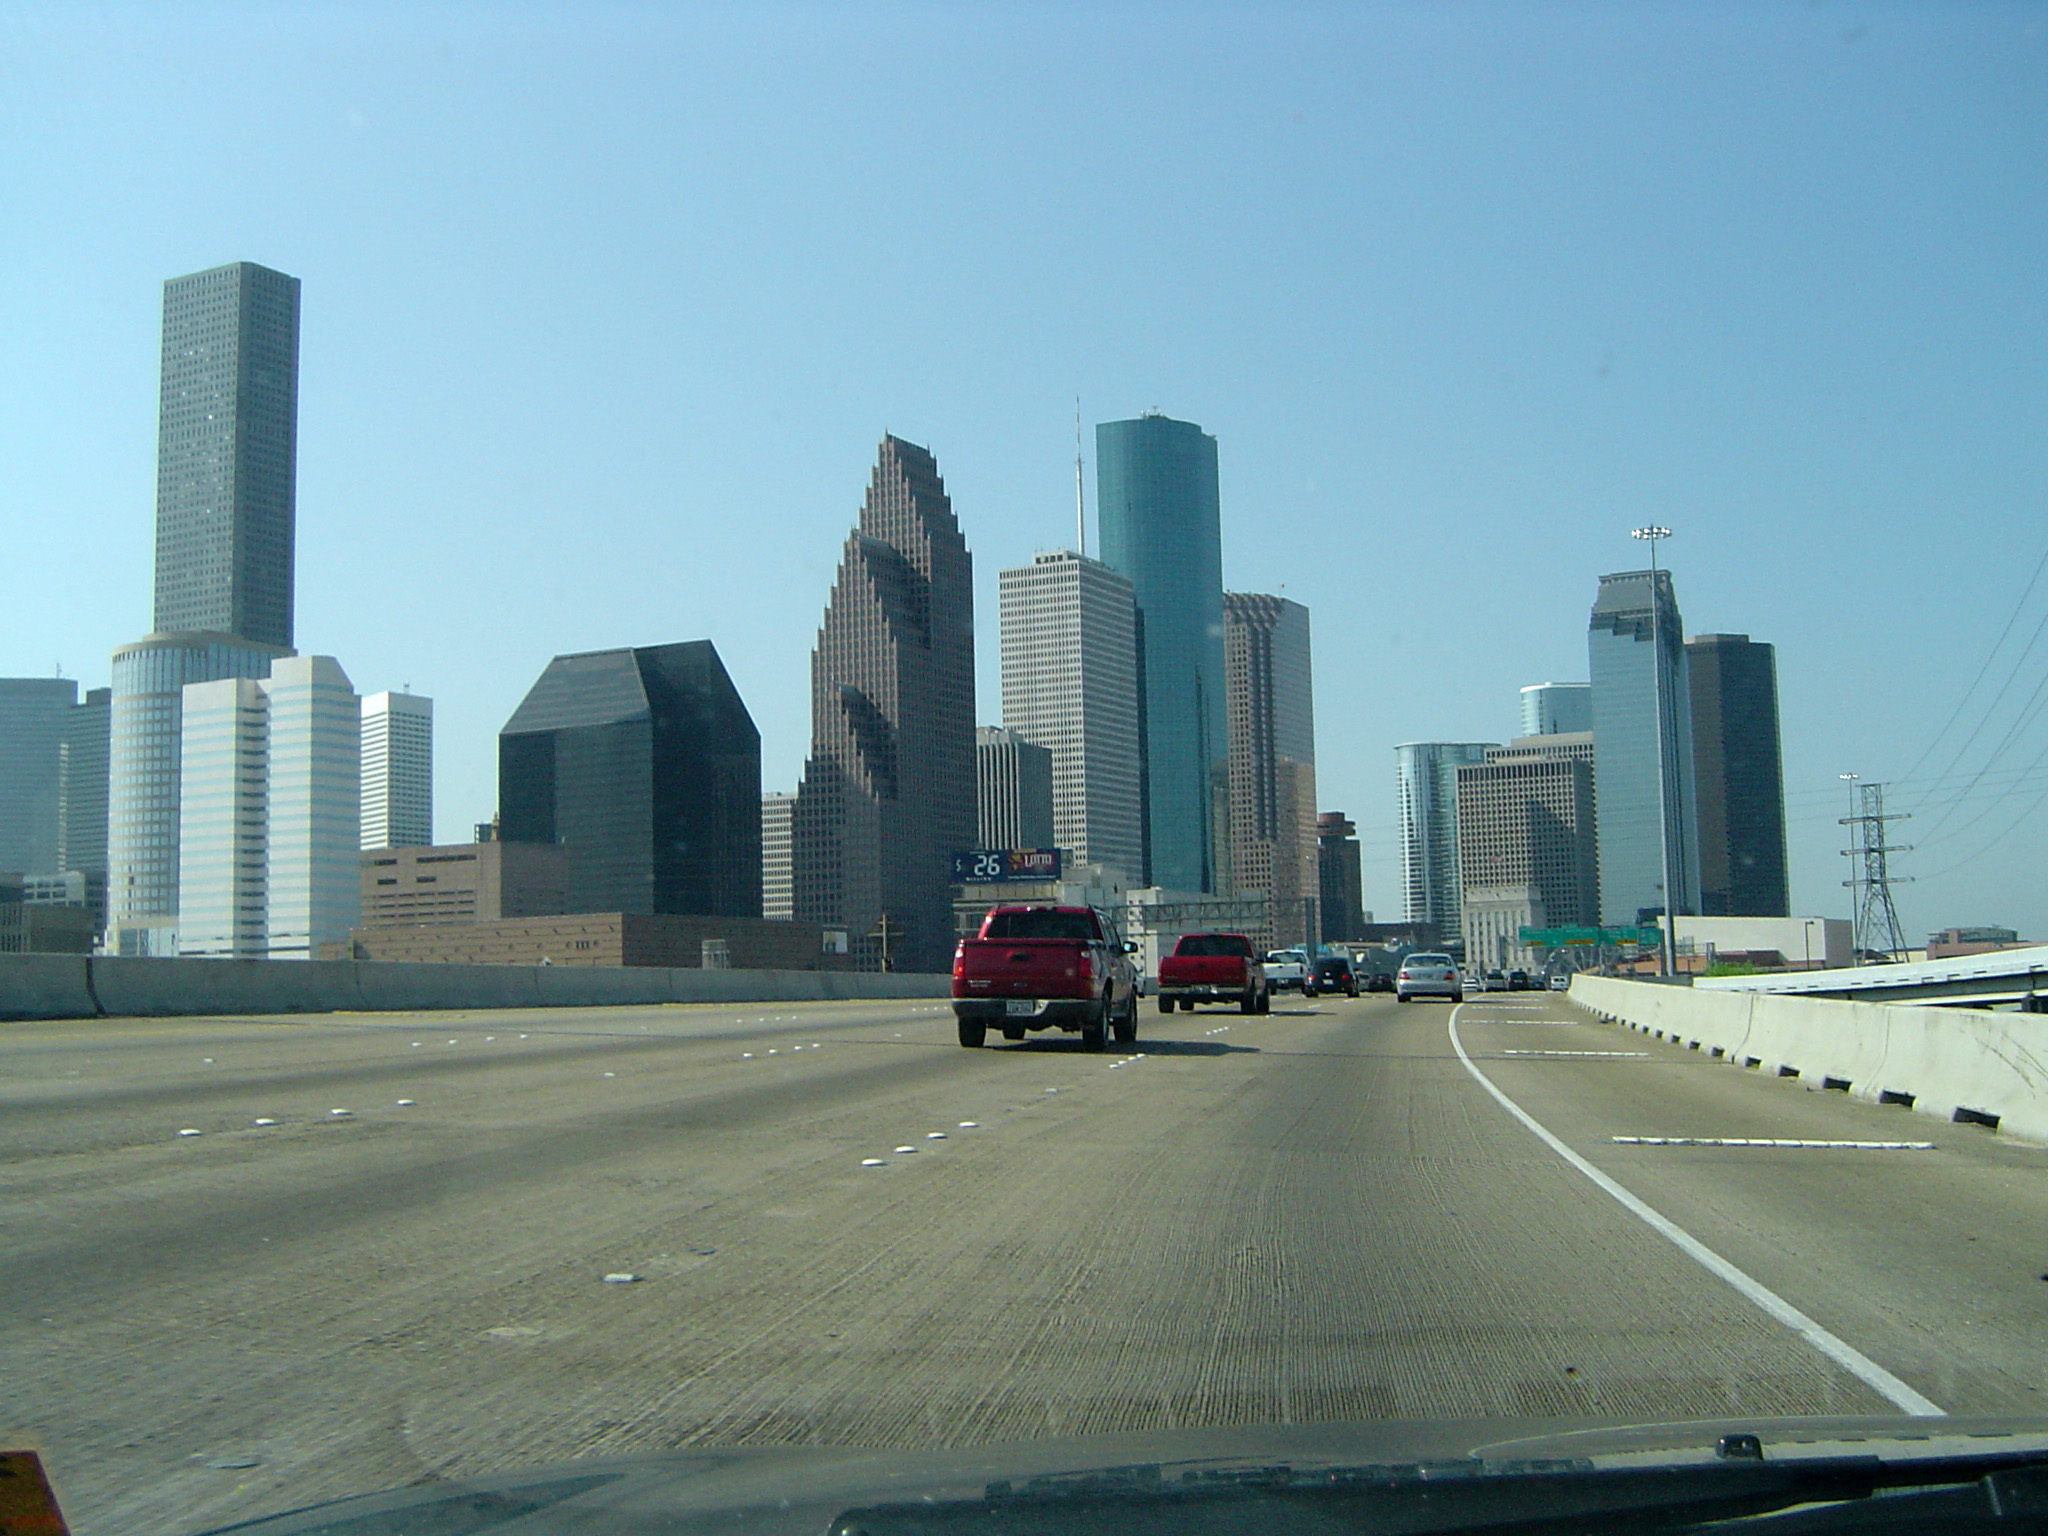 Cars driving on a freeway in America towards a city skyline with modern skyscrapers, drivers perspective